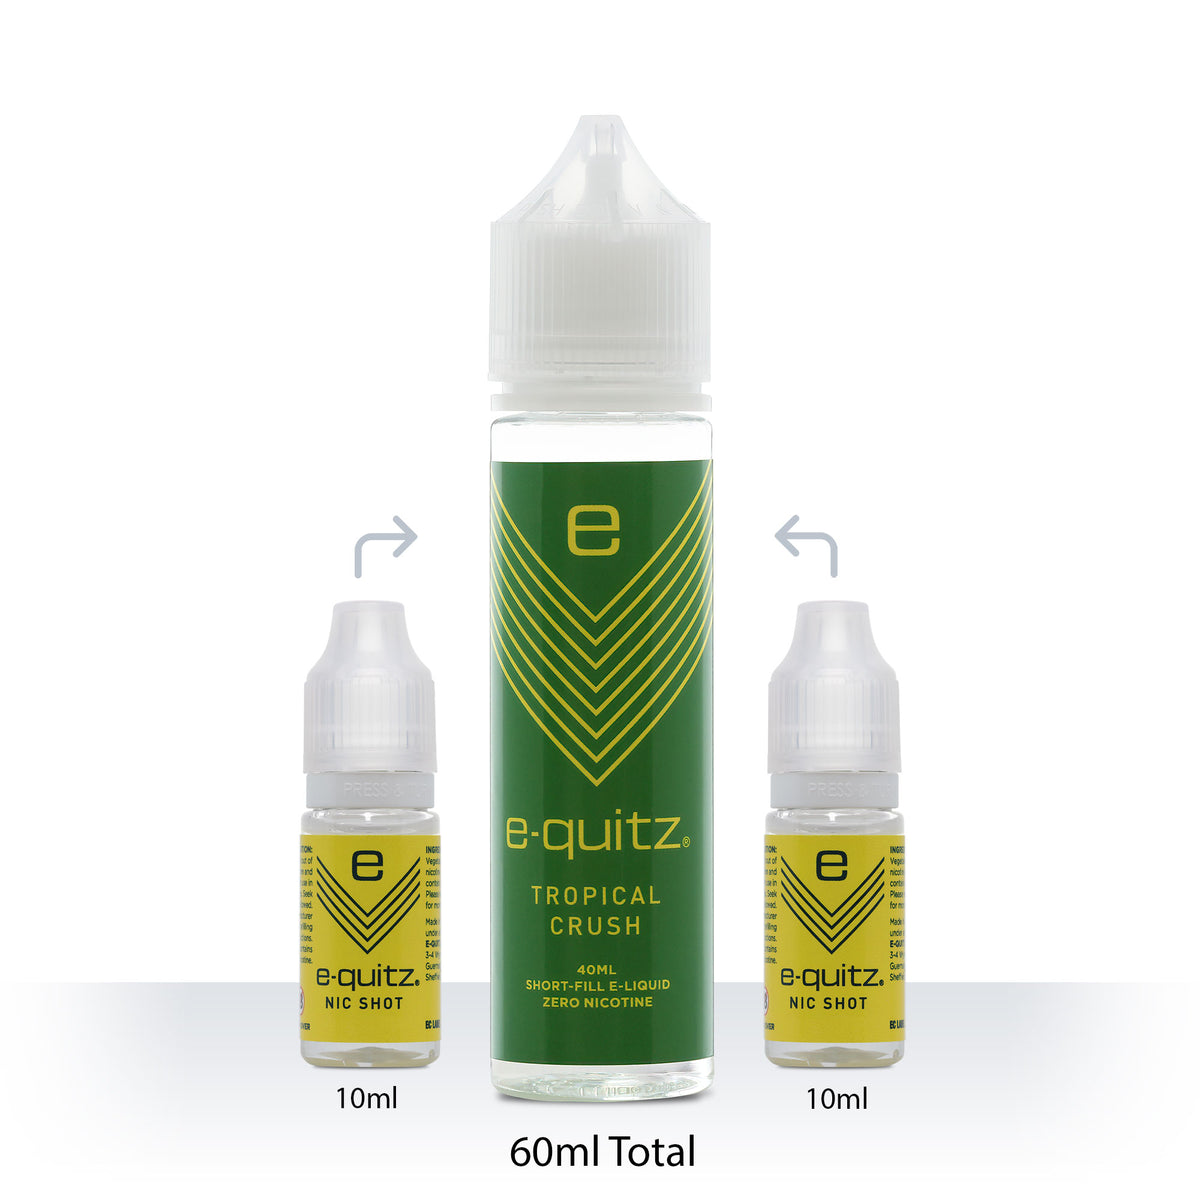 e-quitz tropical crush Short Fill e-liquid